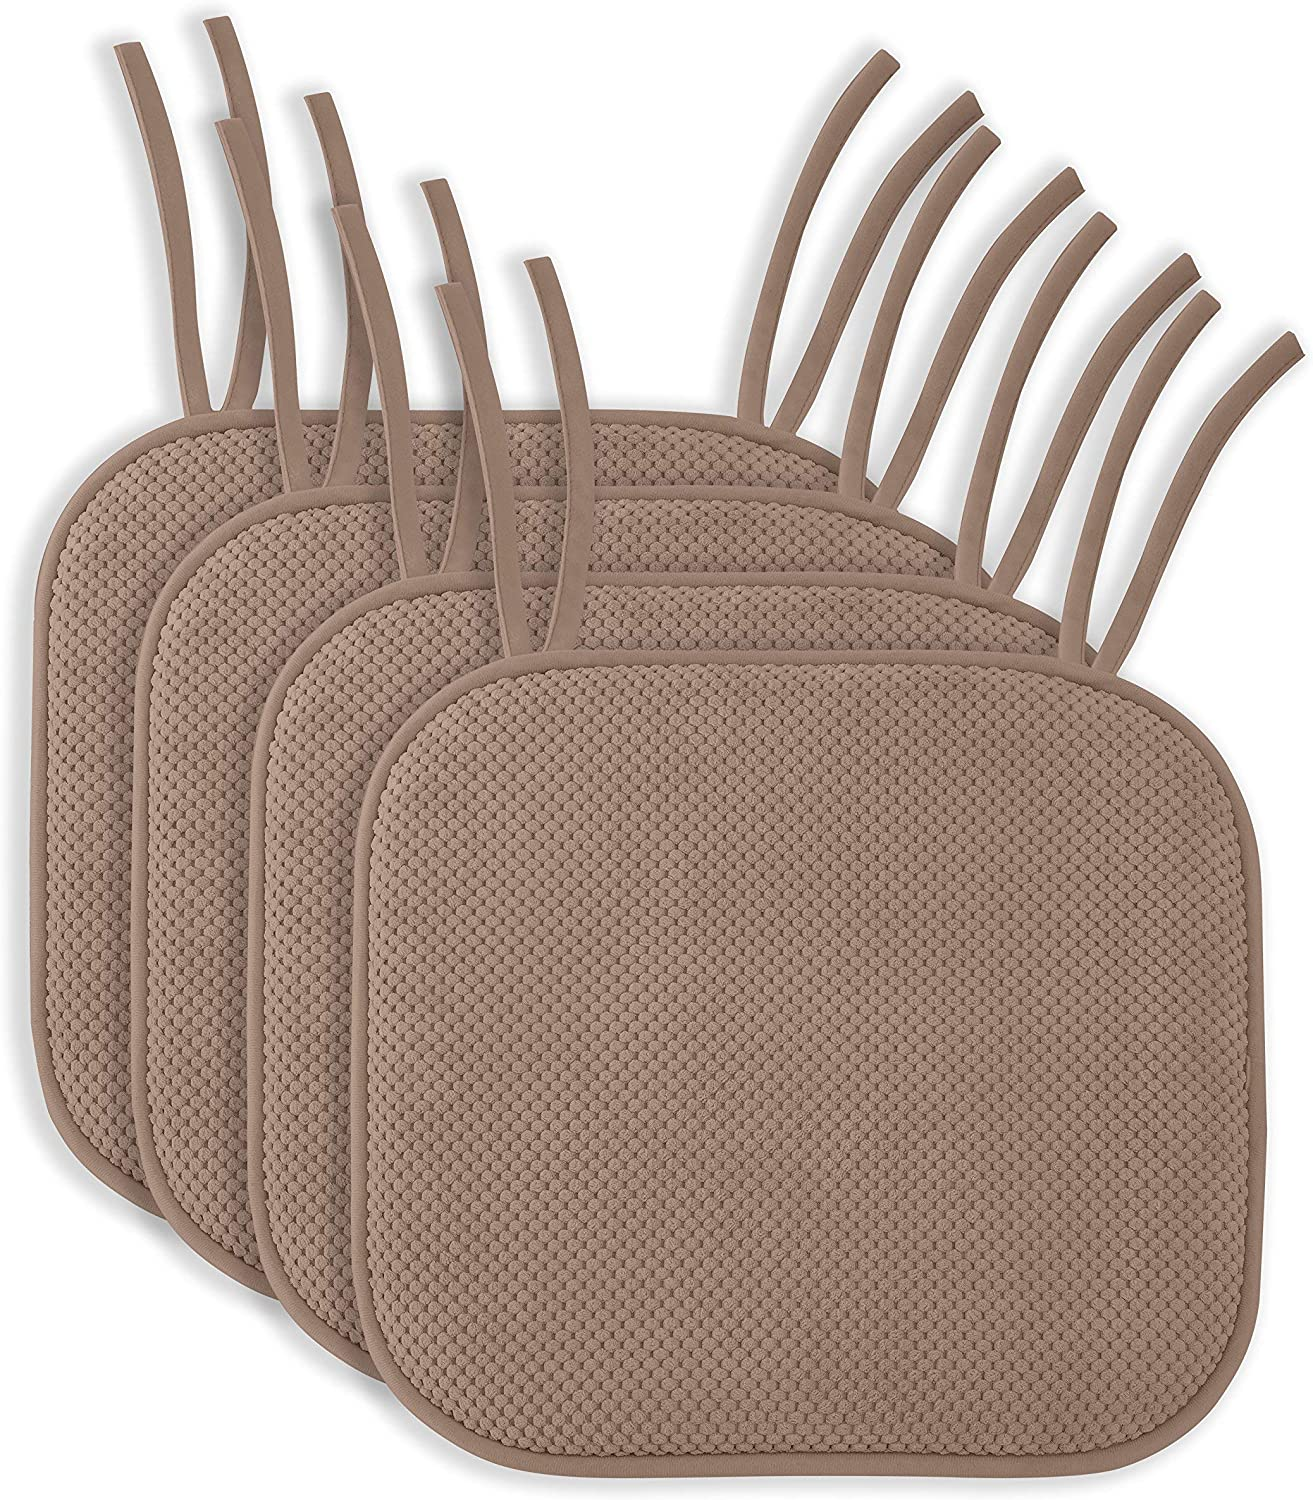 "4 Pack: Ellington Home Non Slip Memory Foam Seat Cushion Chair Pads With Ties - 17"" x 16"" - Taupe"